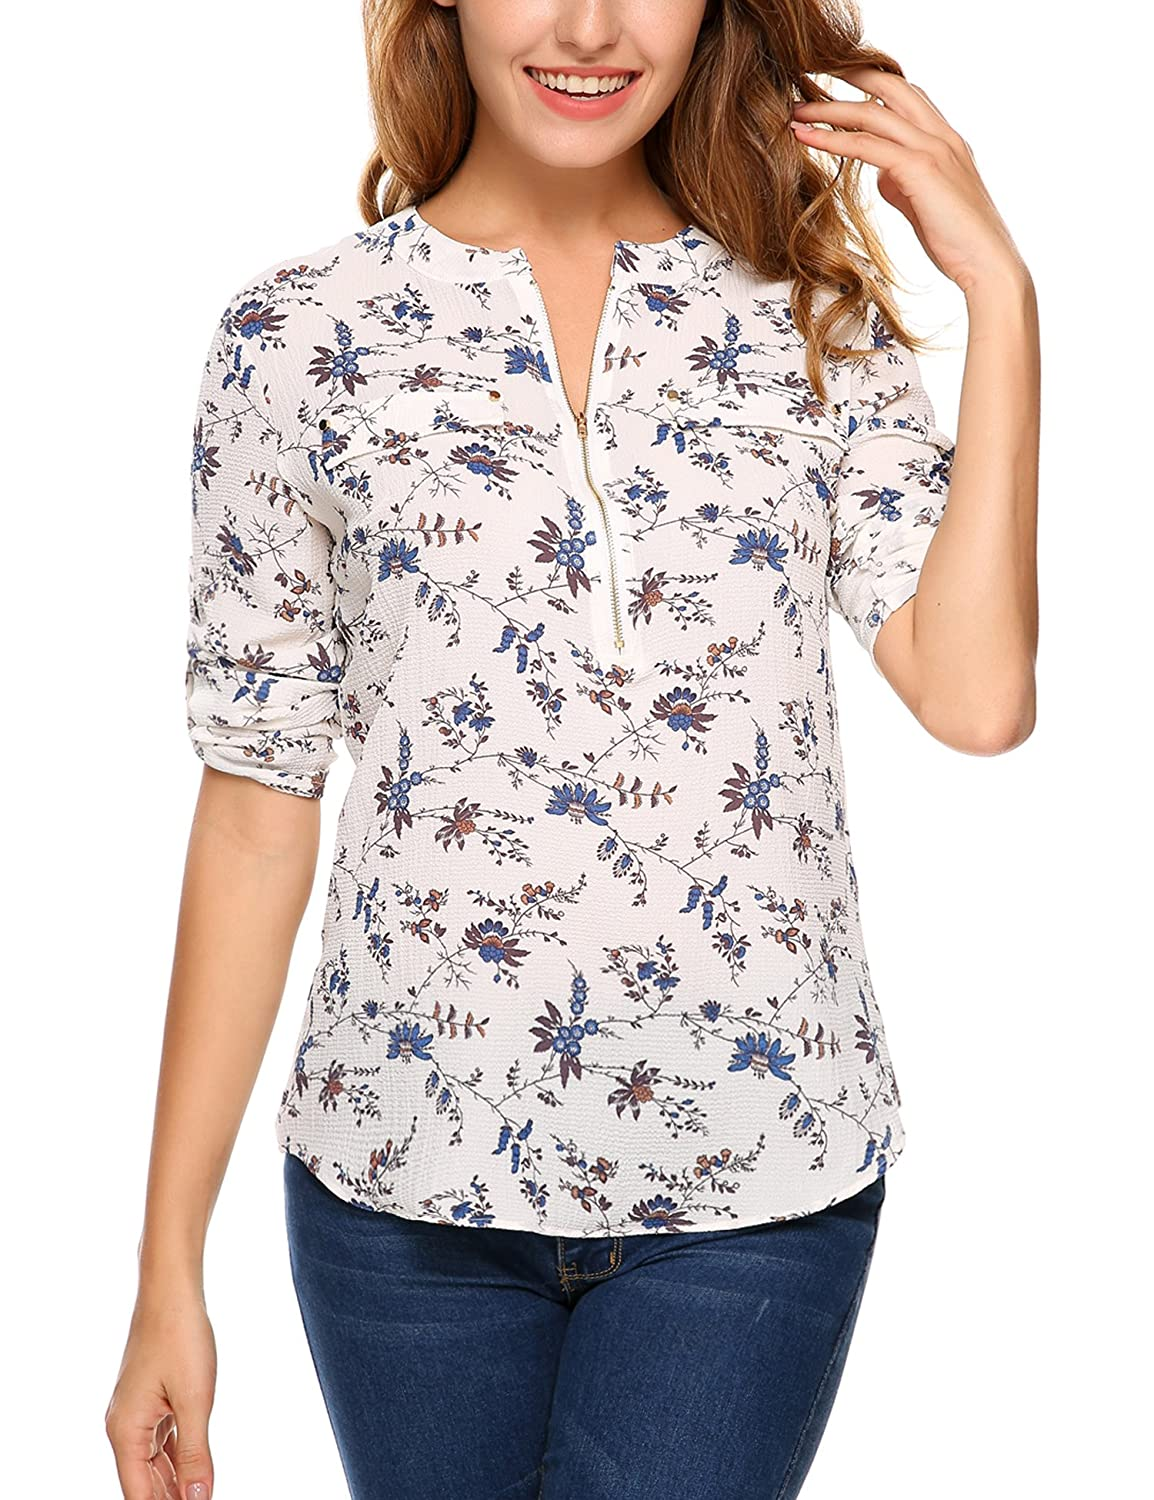 1c6640841c0 ANGVNS Women Long Sleeve Round Neck Floral Chiffon Shirt, White, S at  Amazon Women's Clothing store: